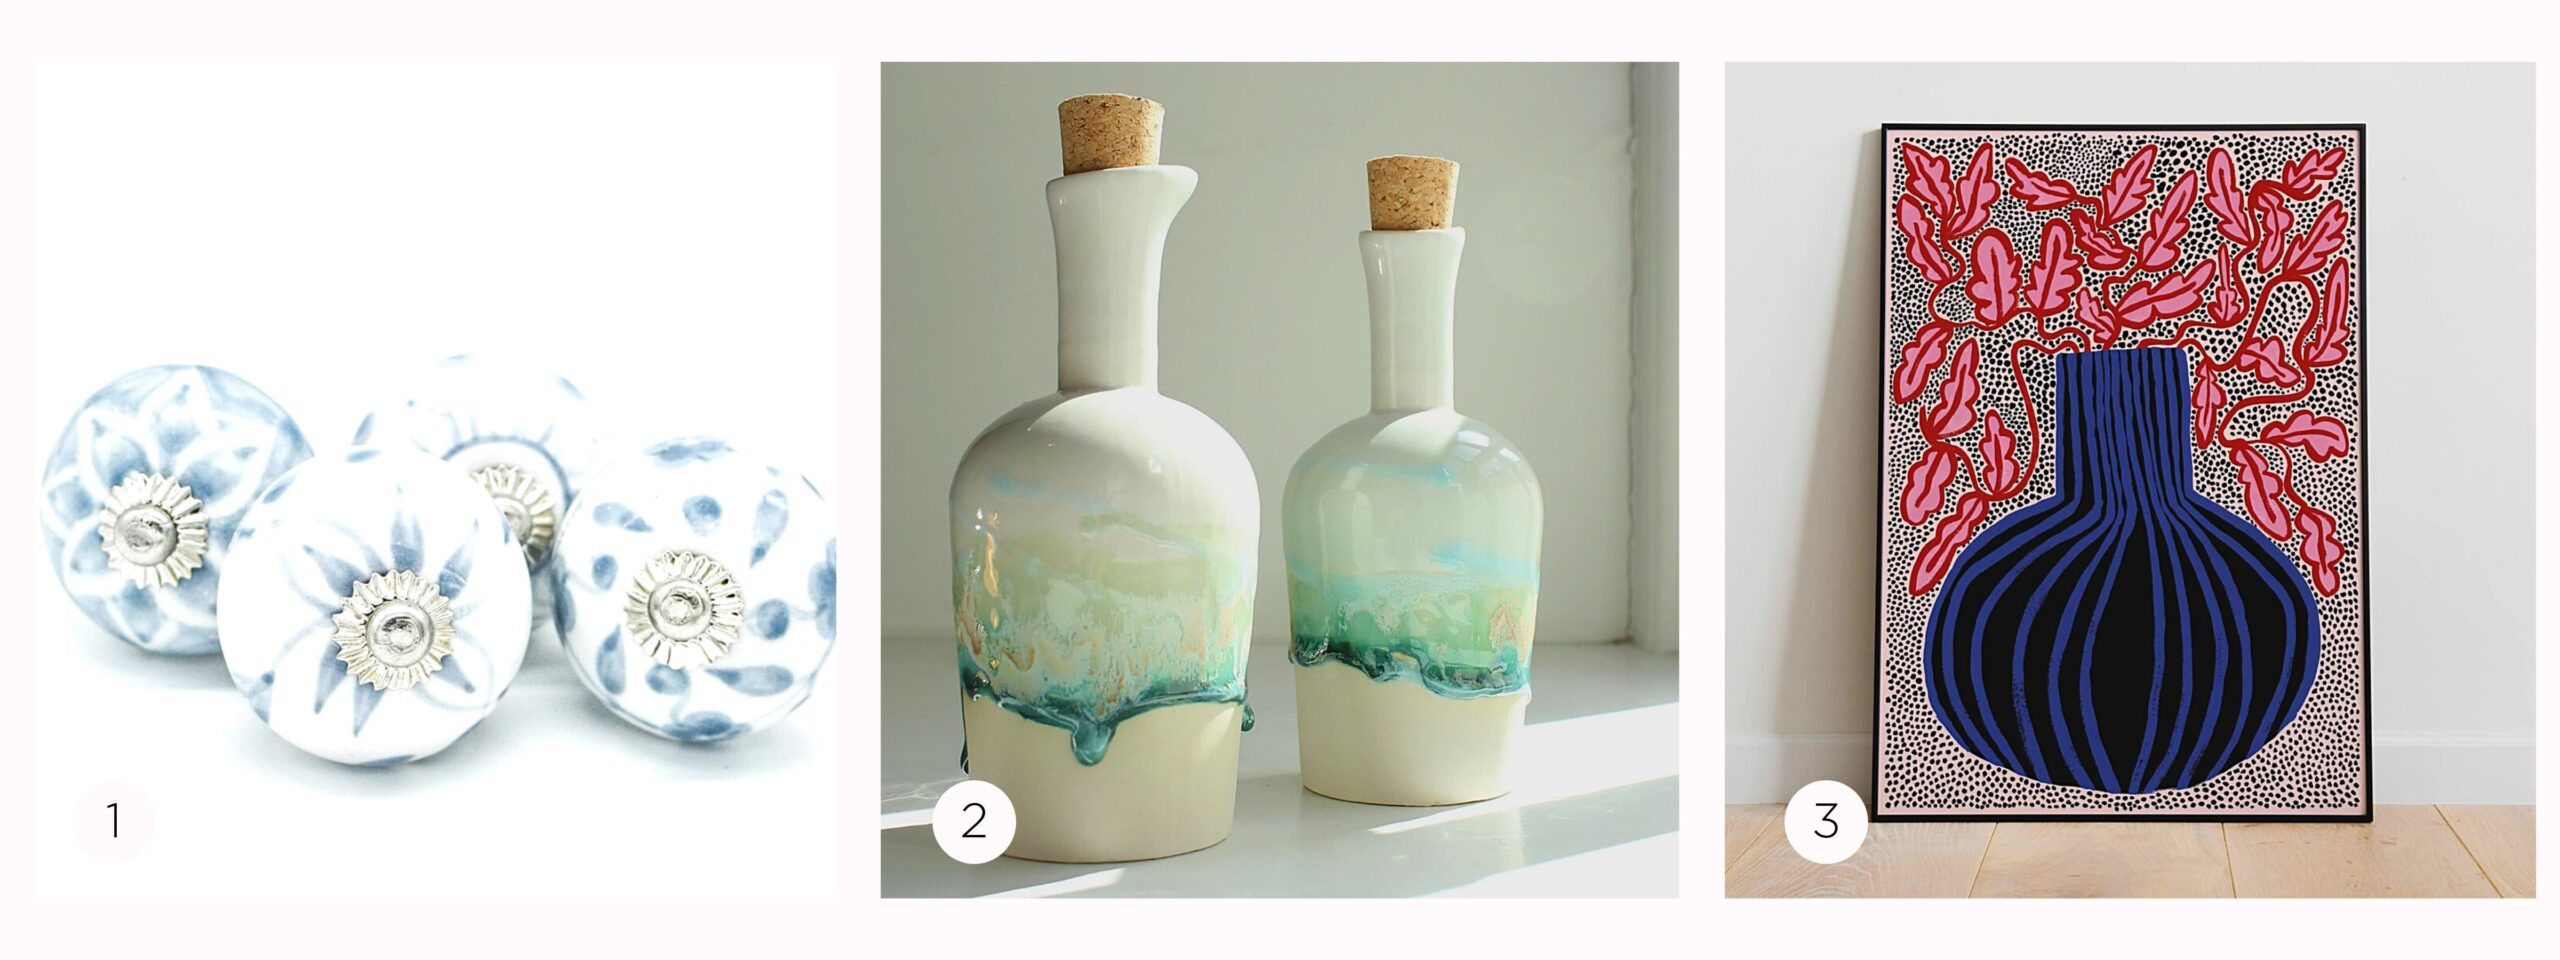 this is an etsy feed for small decorative features